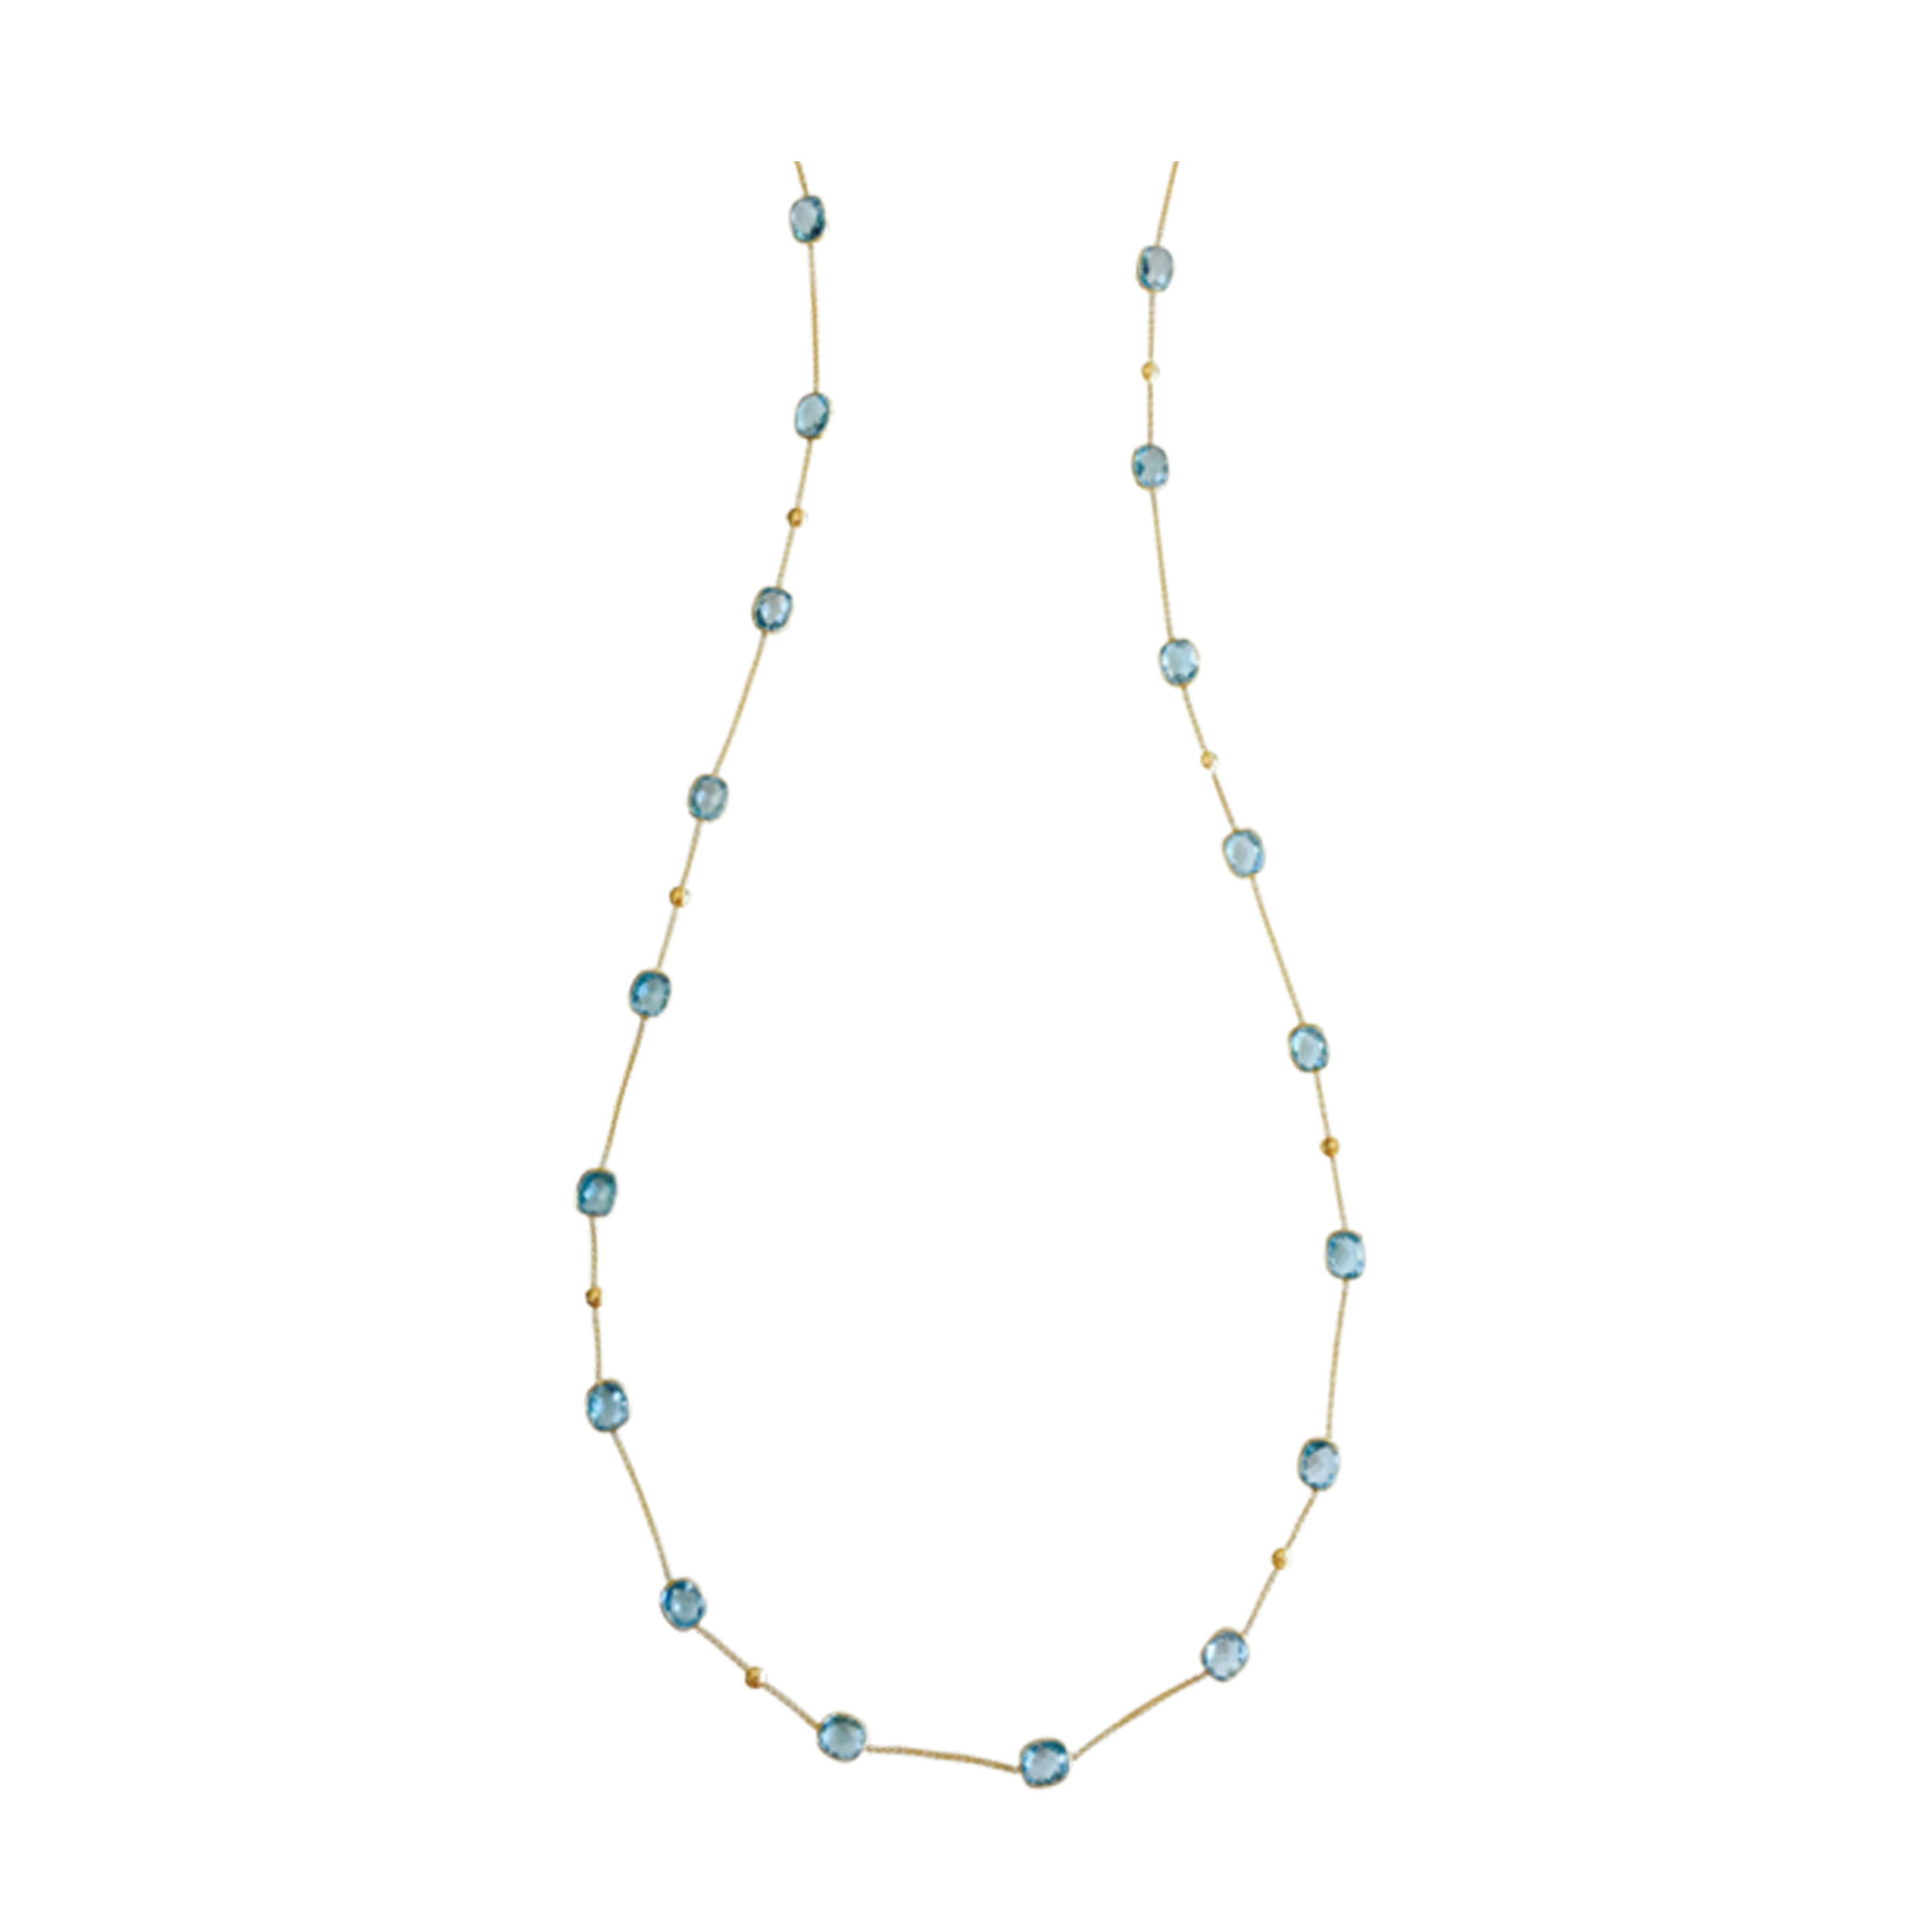 18K Yellow Gold Long Lente Necklace With Sky Blue Topaz